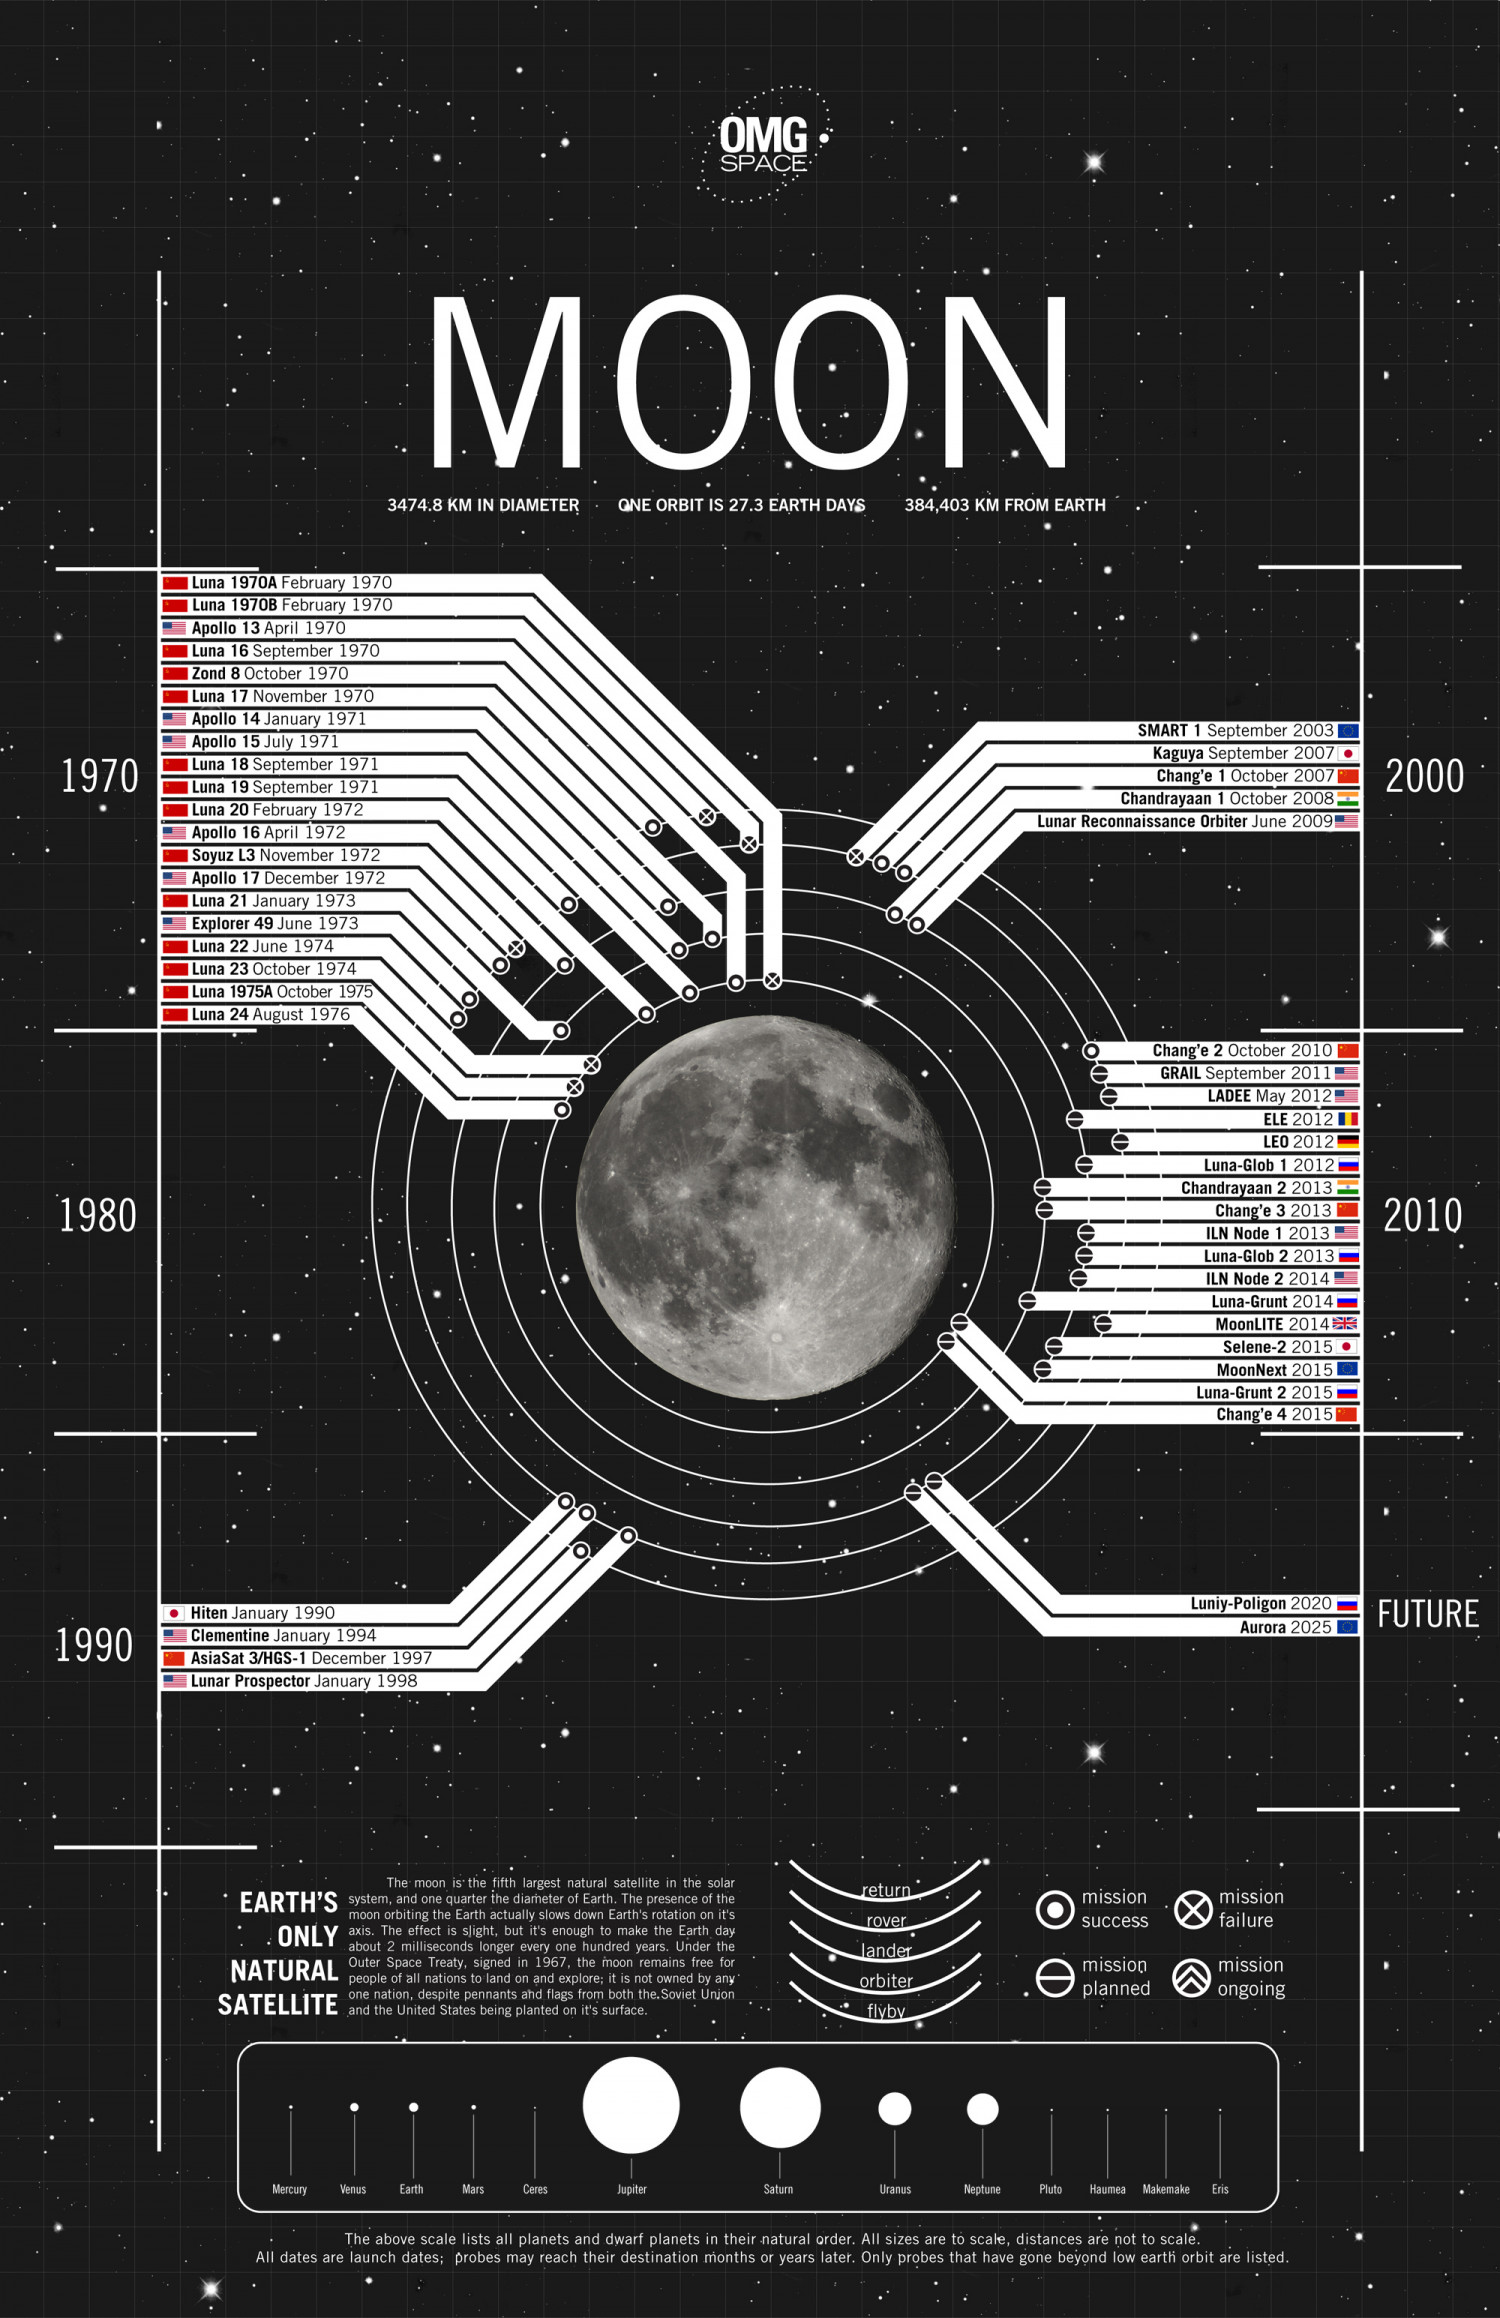 Moon 1990-Future Infographic